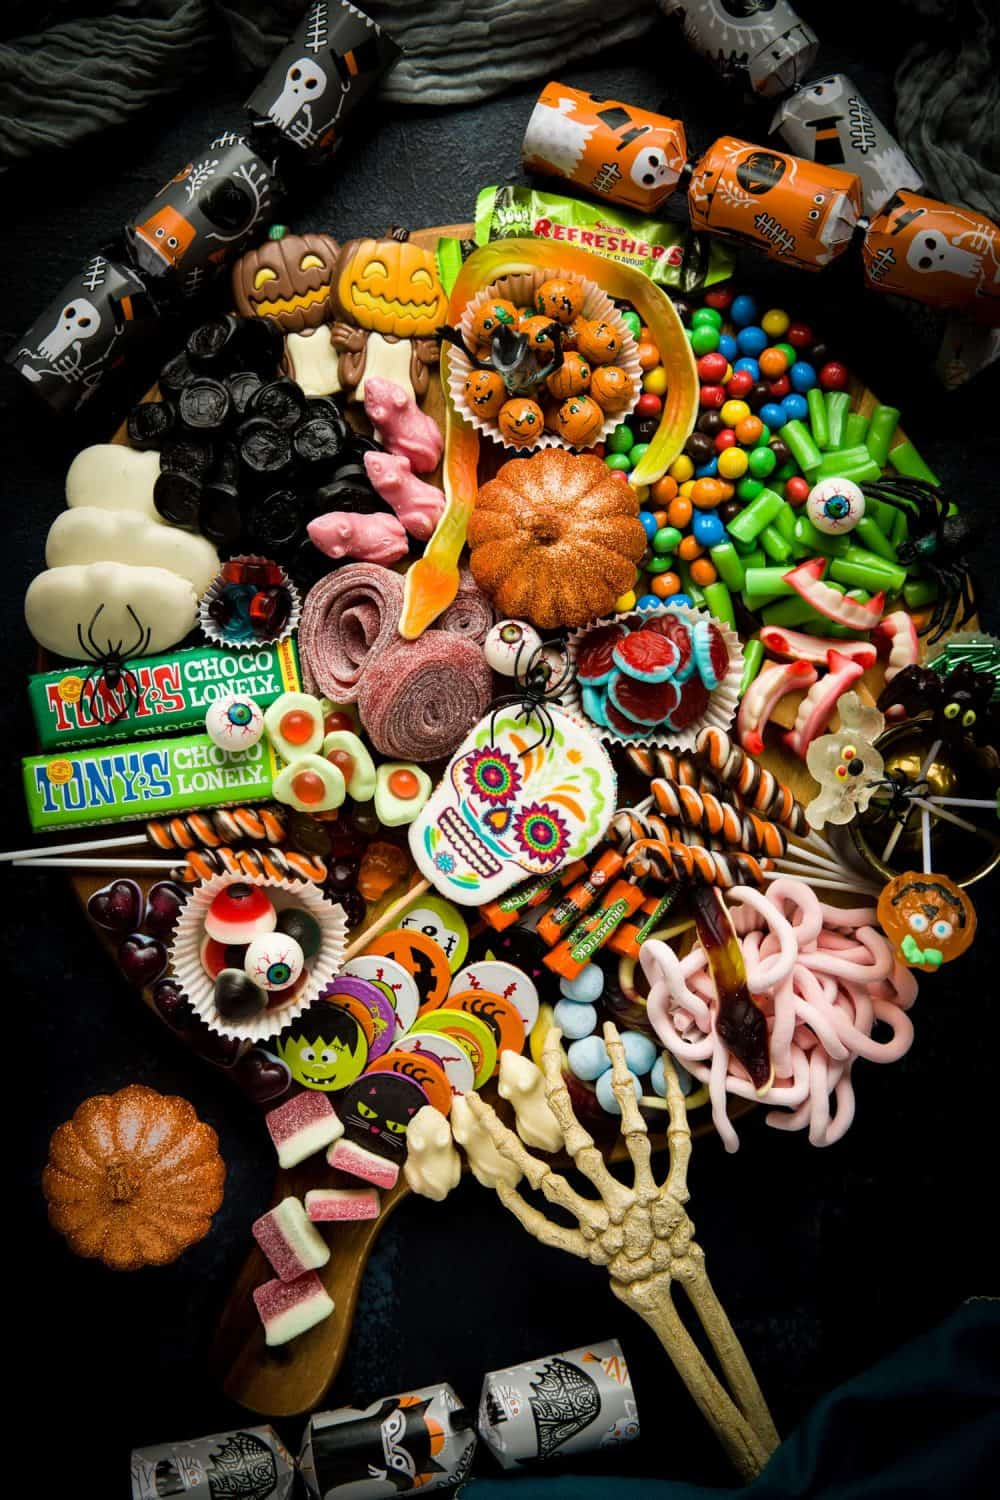 A Halloween Treat Platter filled with a wide variety of sweets, candy and chocolates. It is surrounded by halloween crackers and there is a skeleton hand reaching on to the tray.